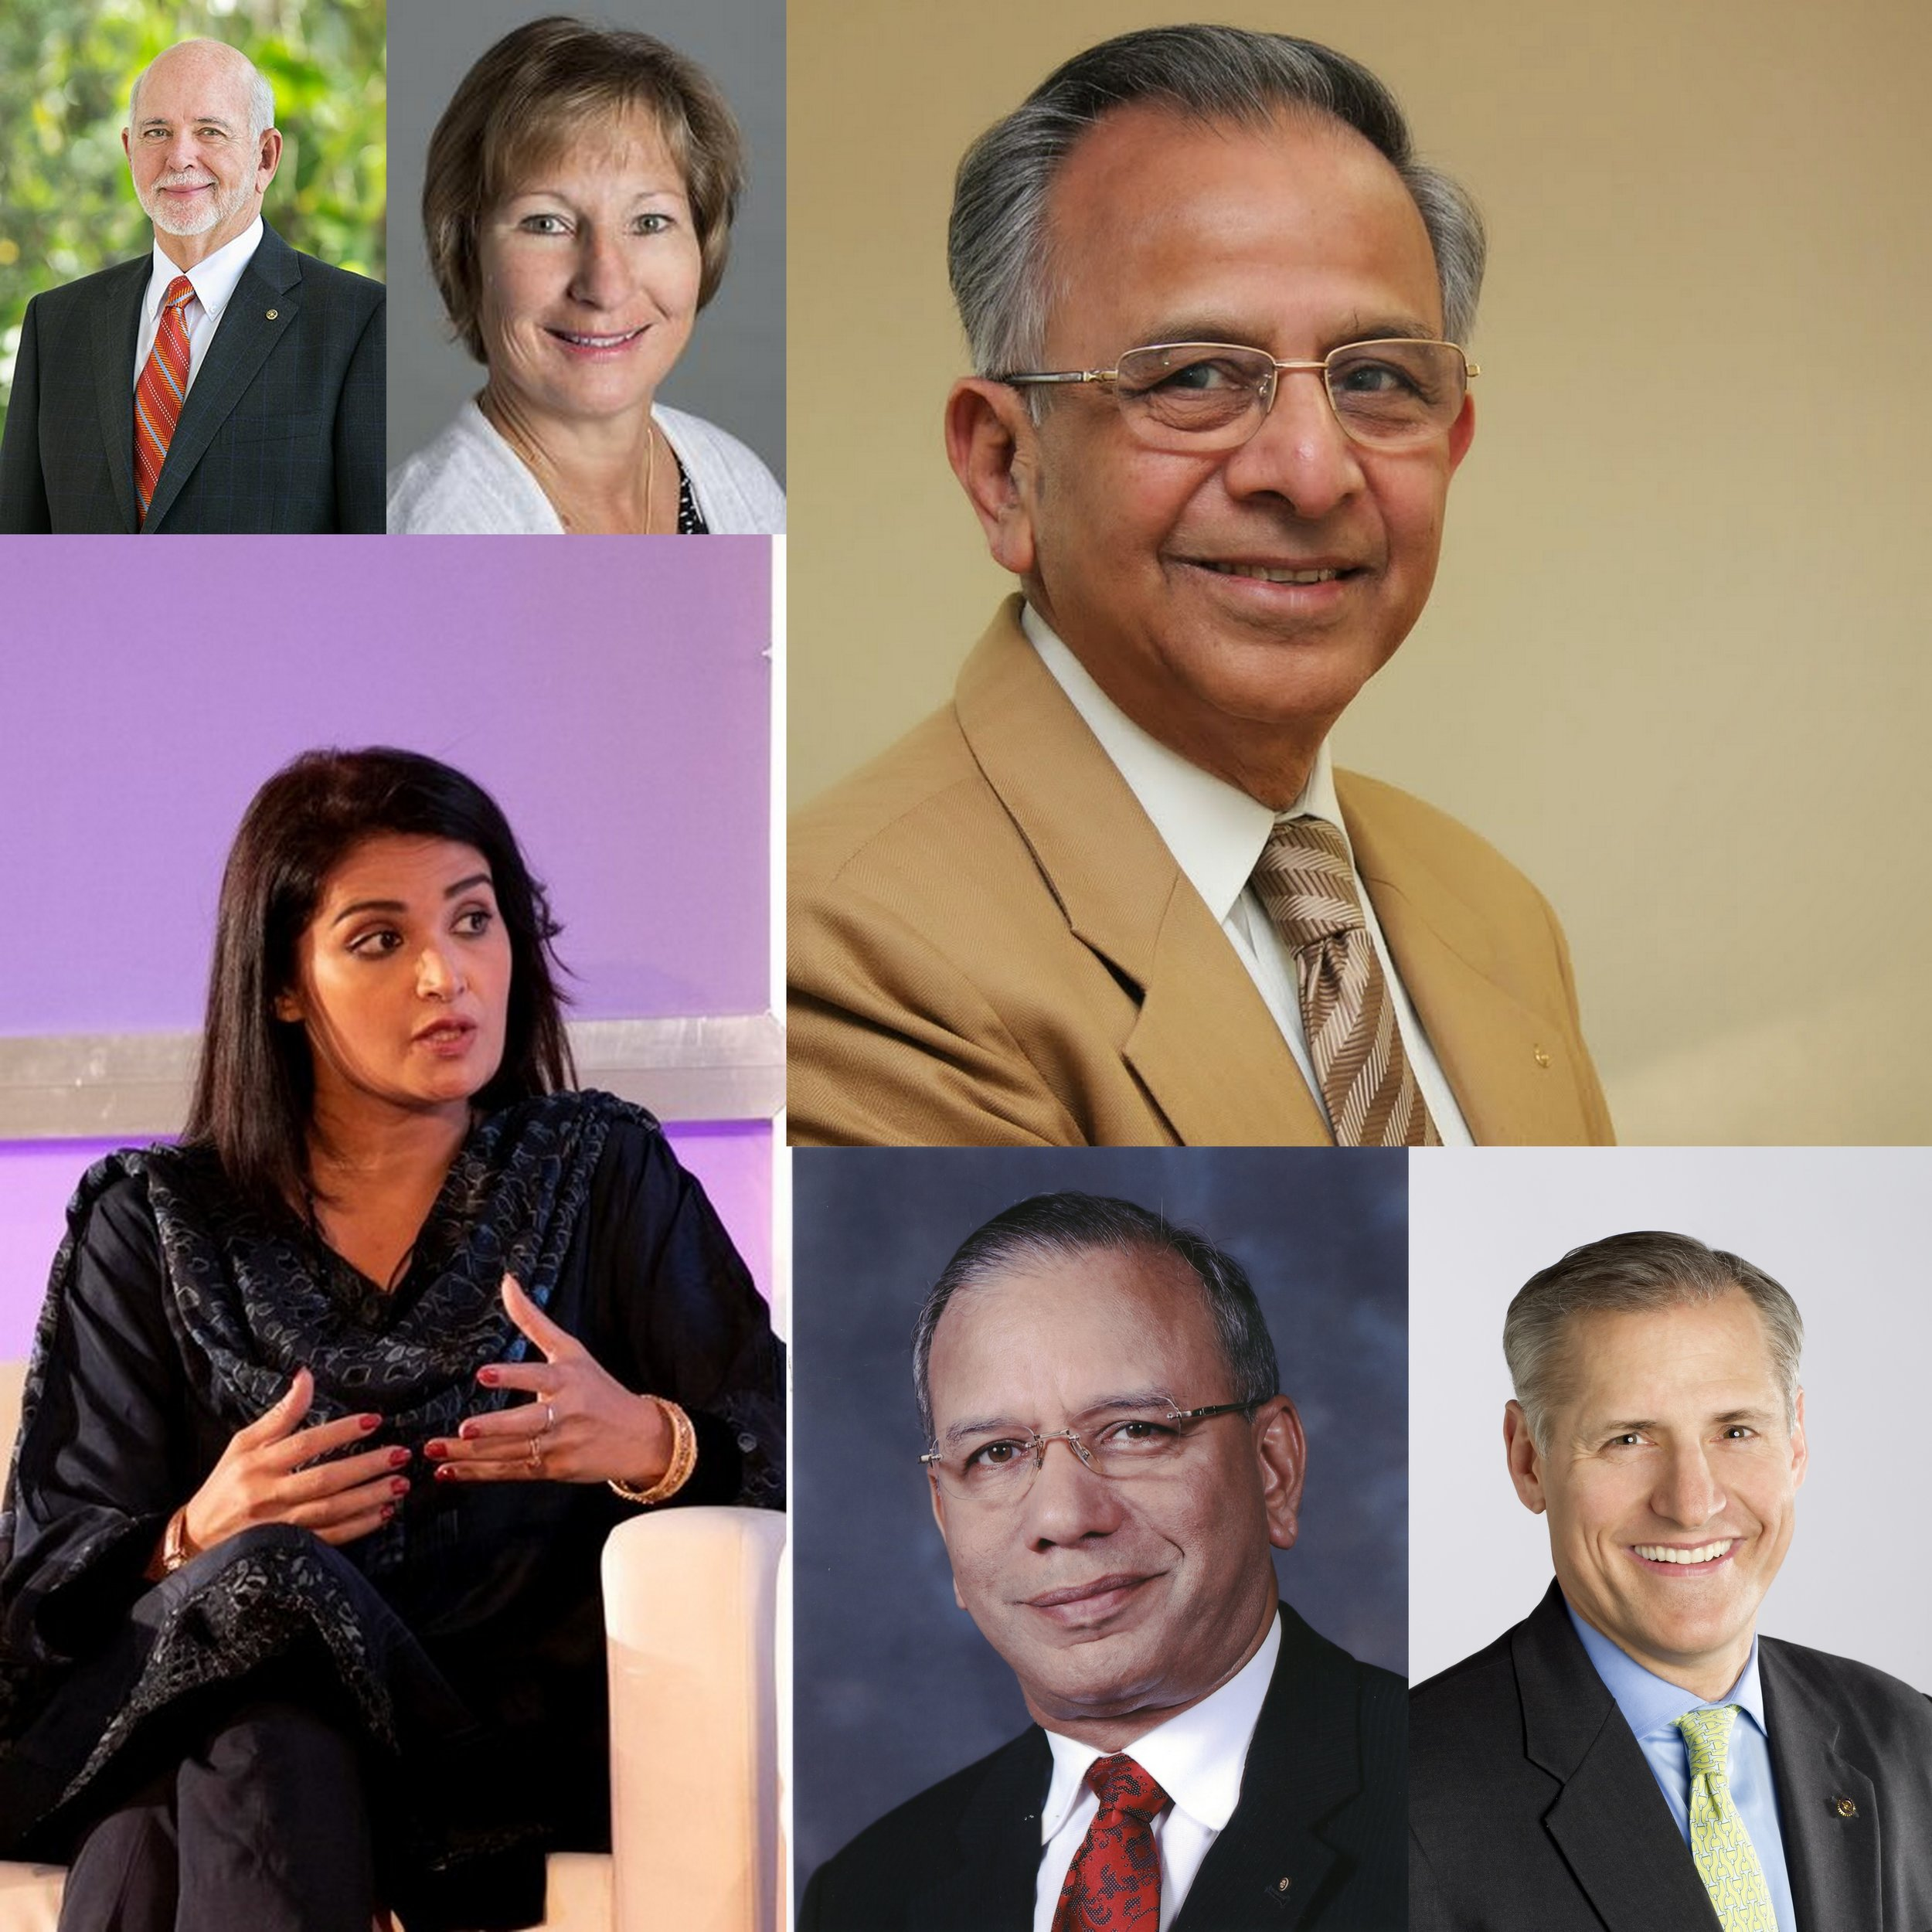 Rotary eXPERTs are frequent guests on the show - Devin's Your Mark on the World Show, available on YouTube and as a podcast, has not only featured Bill Gates, and RI President Barry Rassin but also, Past Rotary International President Ravi Ravindran, Rotary Secretary General John Hewko, Rotary's polio expert, Carol Pandak and WHO's Pakistan polio leader Ujala Nayyar. While visiting New Delhi for Forbes, Devin also interviewed Past Rotary International President Raja Saboo. Many other Rotarians and polio experts have been guests on the show.